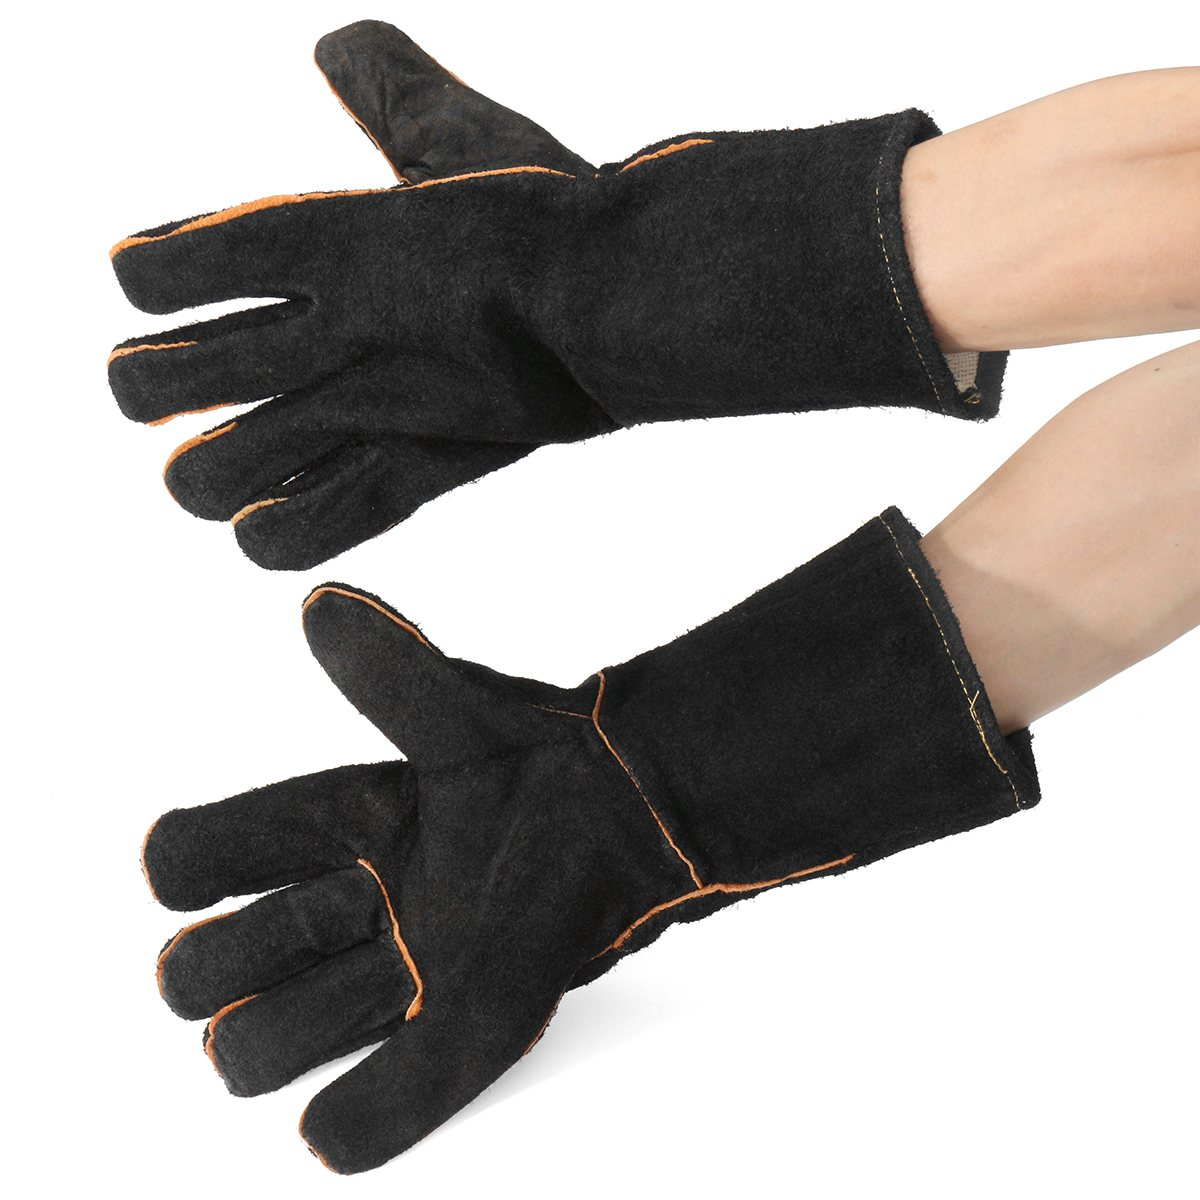 Safurance 32cm XL Heavy Duty Welding Gloves Stoves PU Leather Cowhide Protect Welder Hands Workplace Safety Glove покрывало на кресло les gobelins cordillere 50 х 120 см